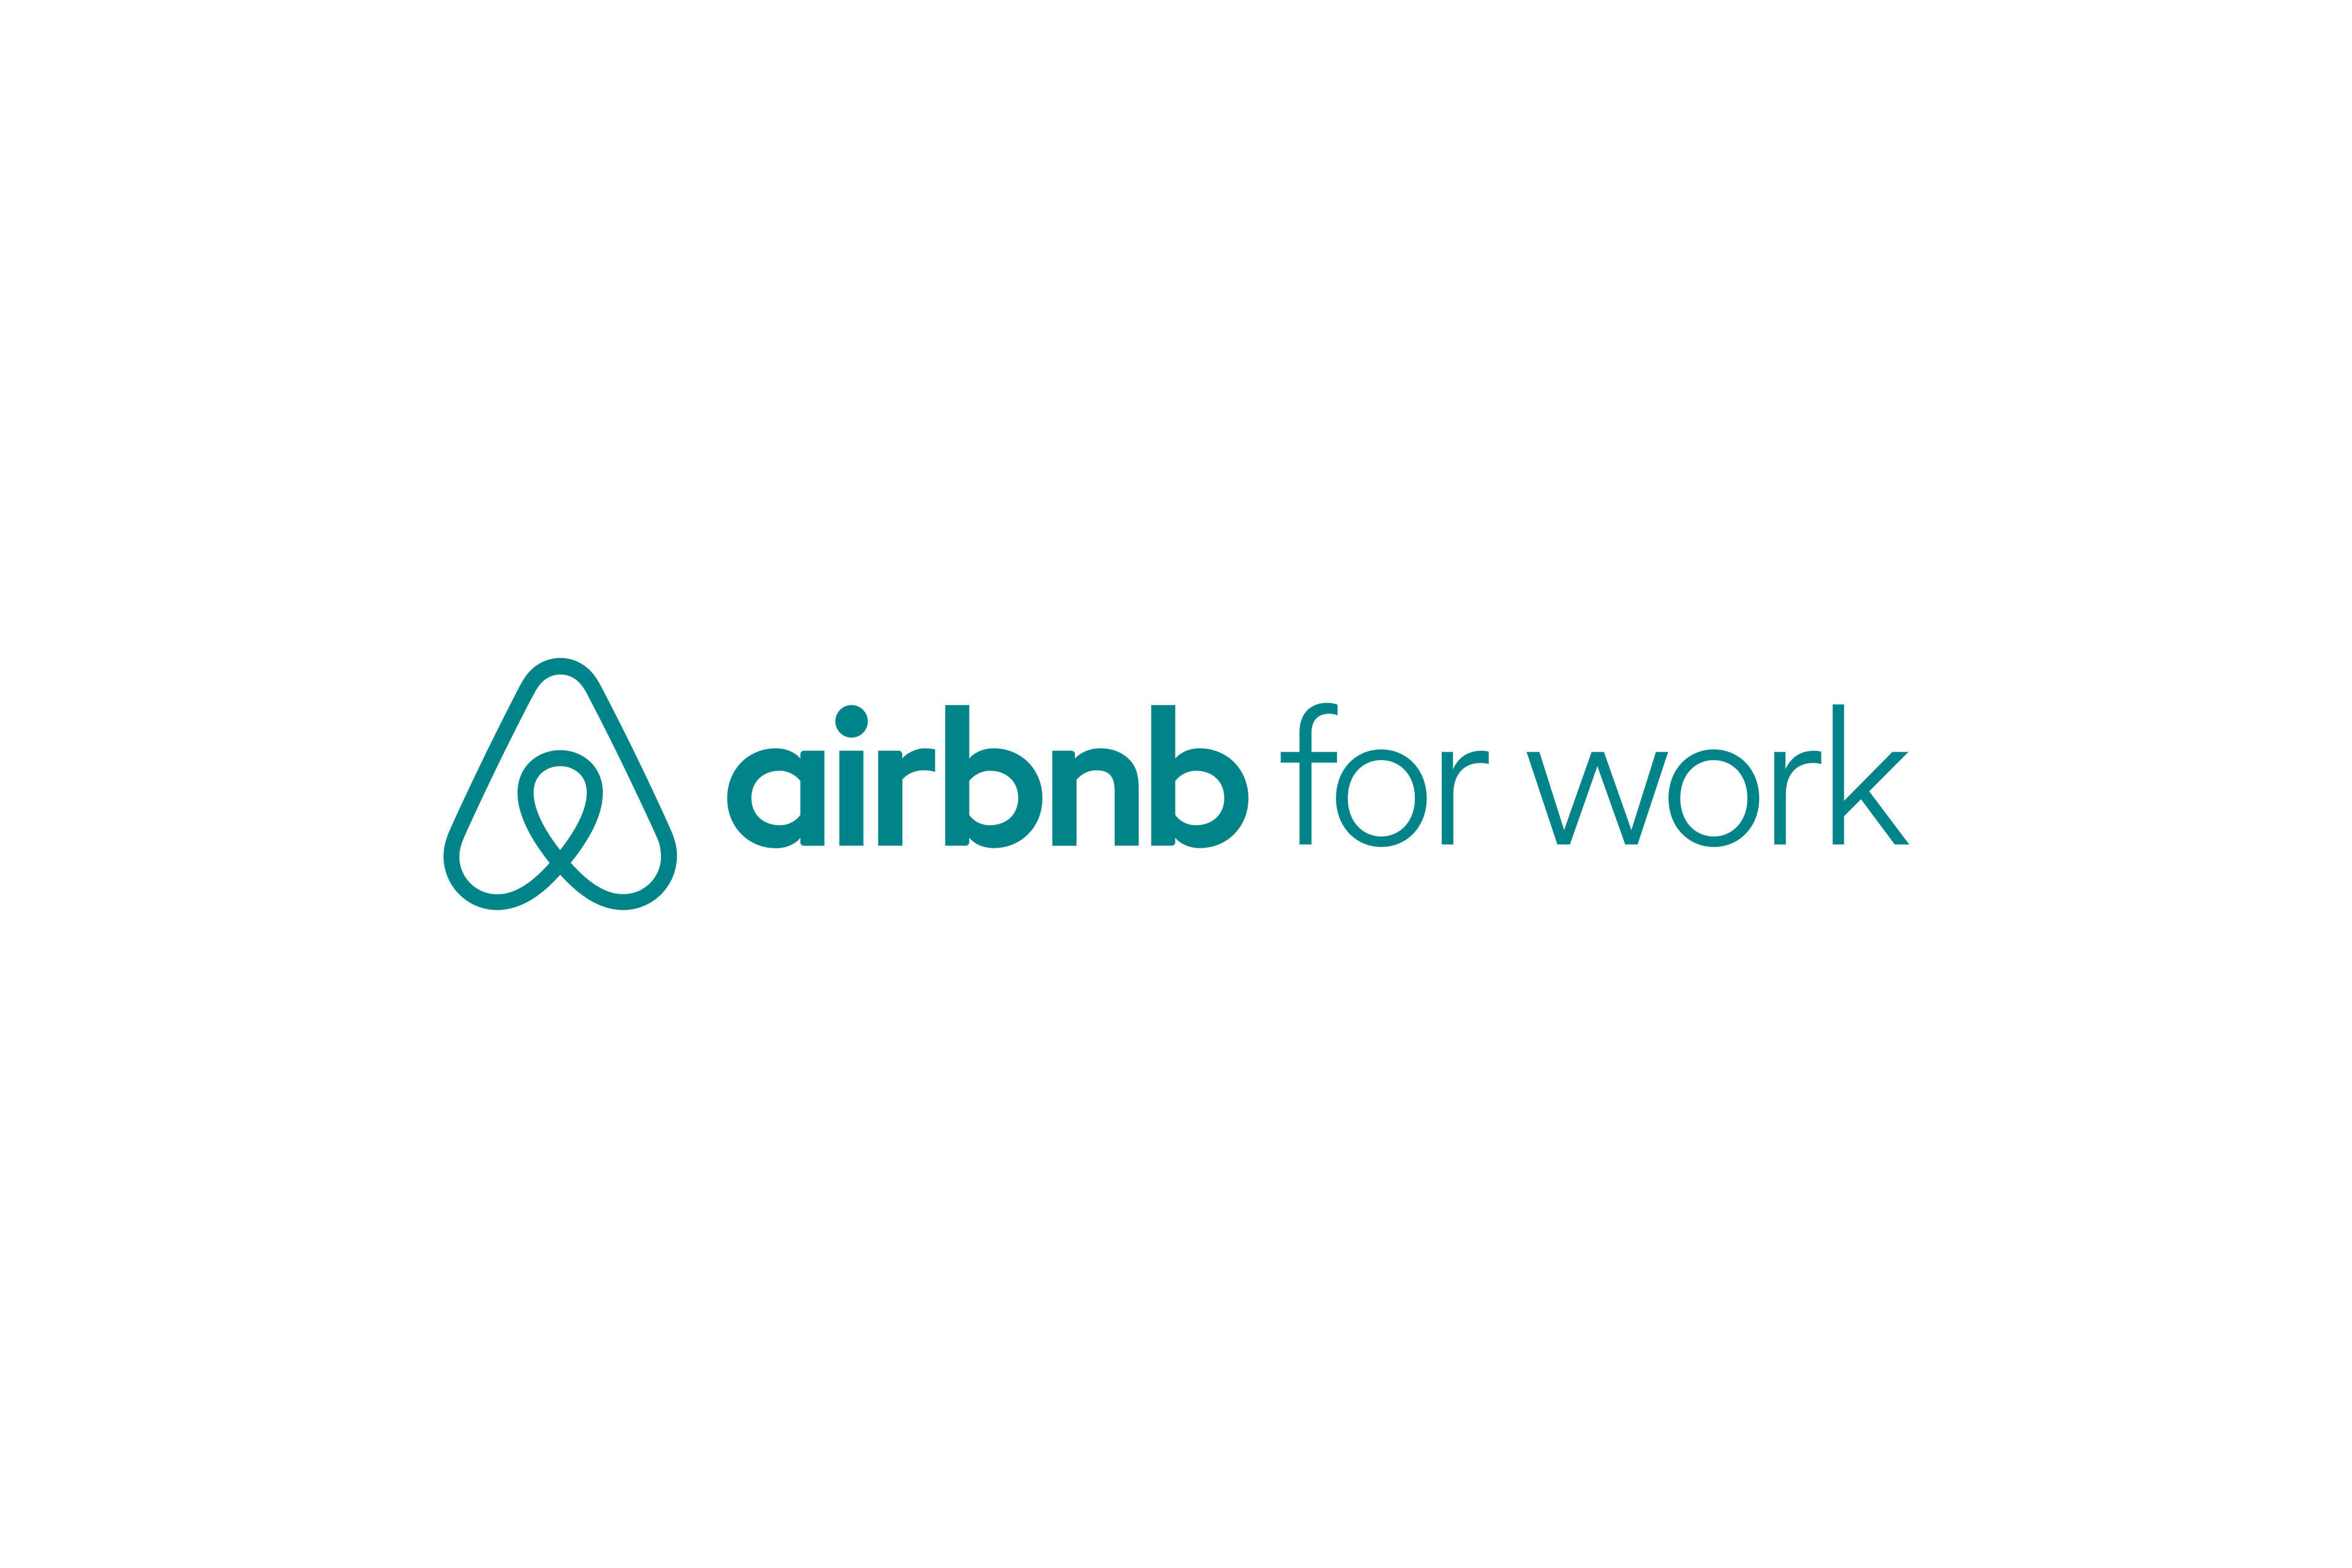 Airbnb For Work logo